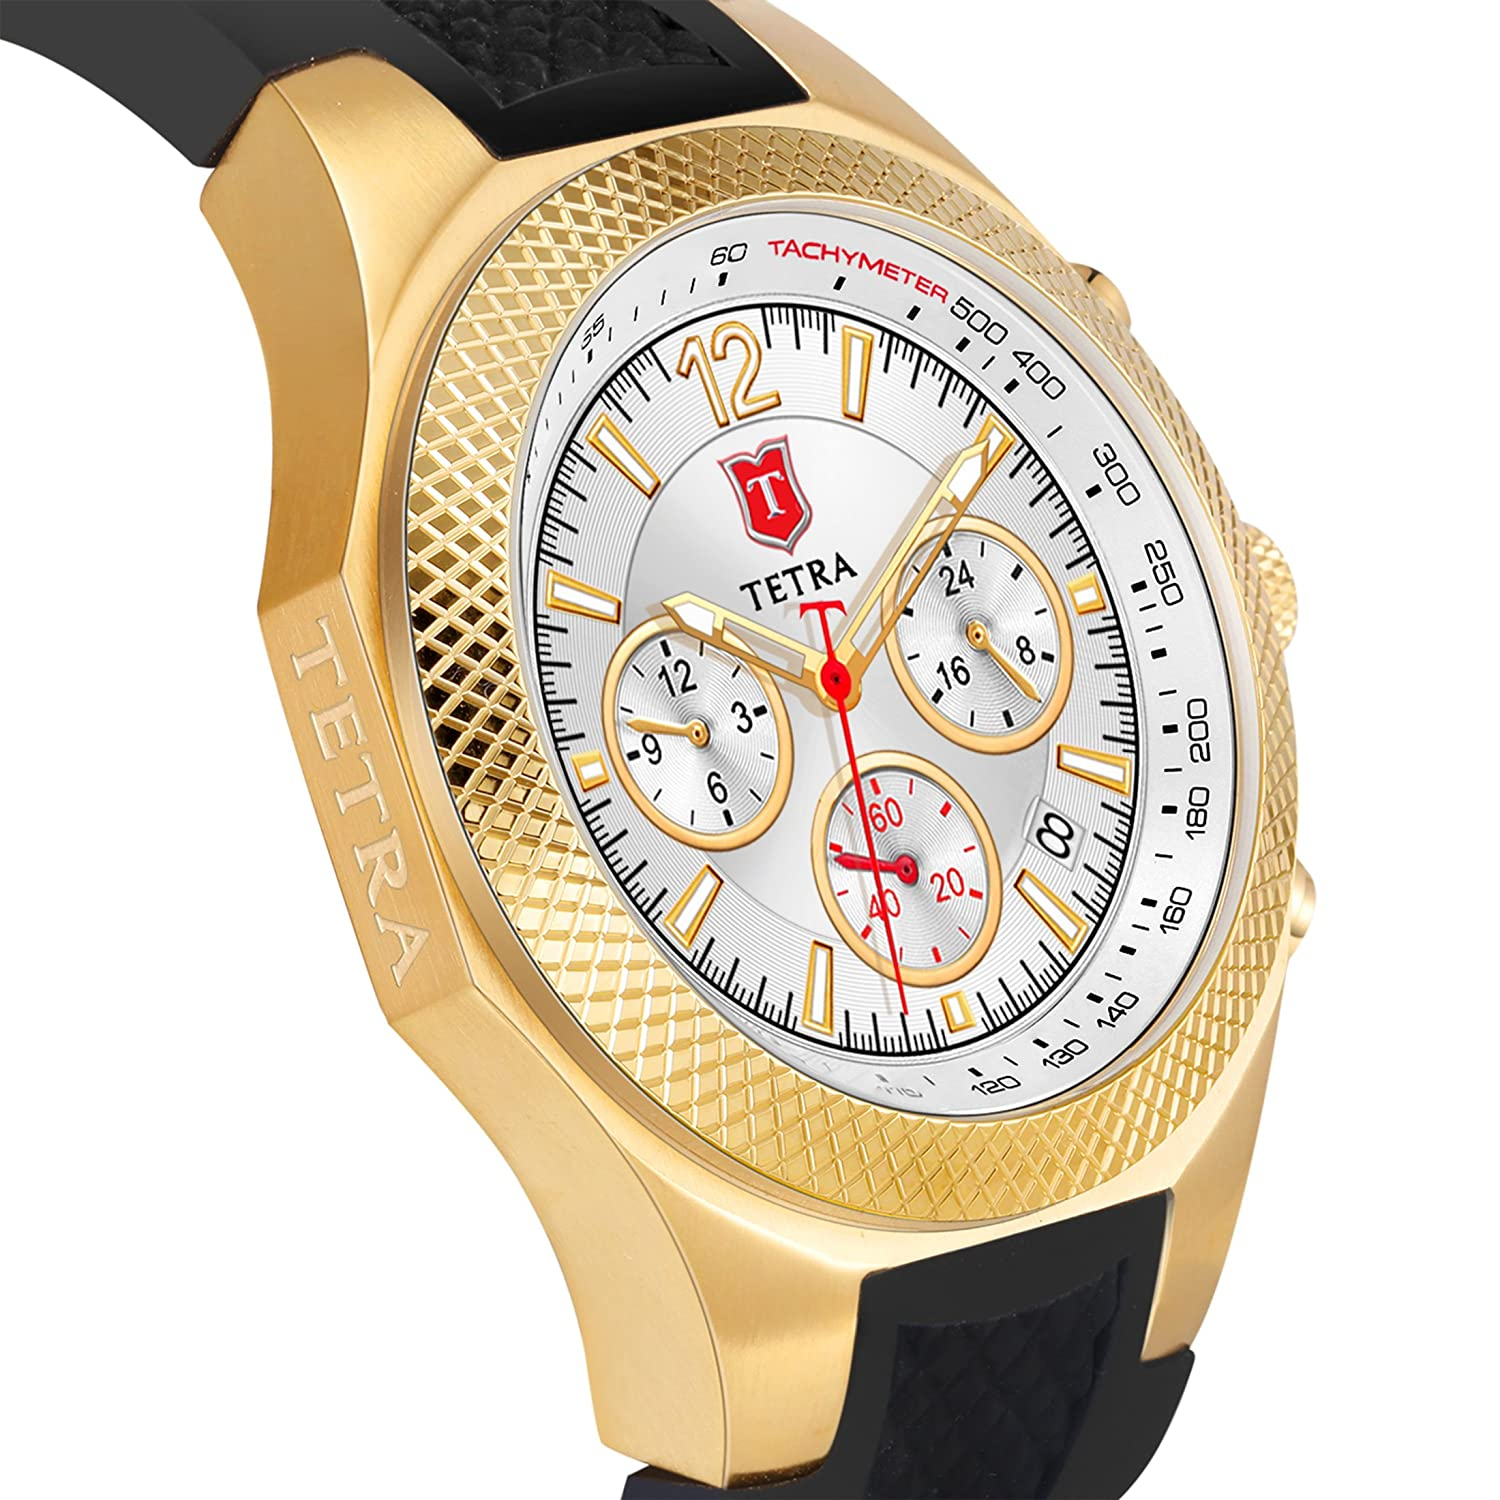 Tetra Men s Gold Plated Italian Design Special Aventura Sport Edition Dual-Time Swiss Luminous Watch with Professional Water Resistance of 330 Ft Luxury Gift Box Included